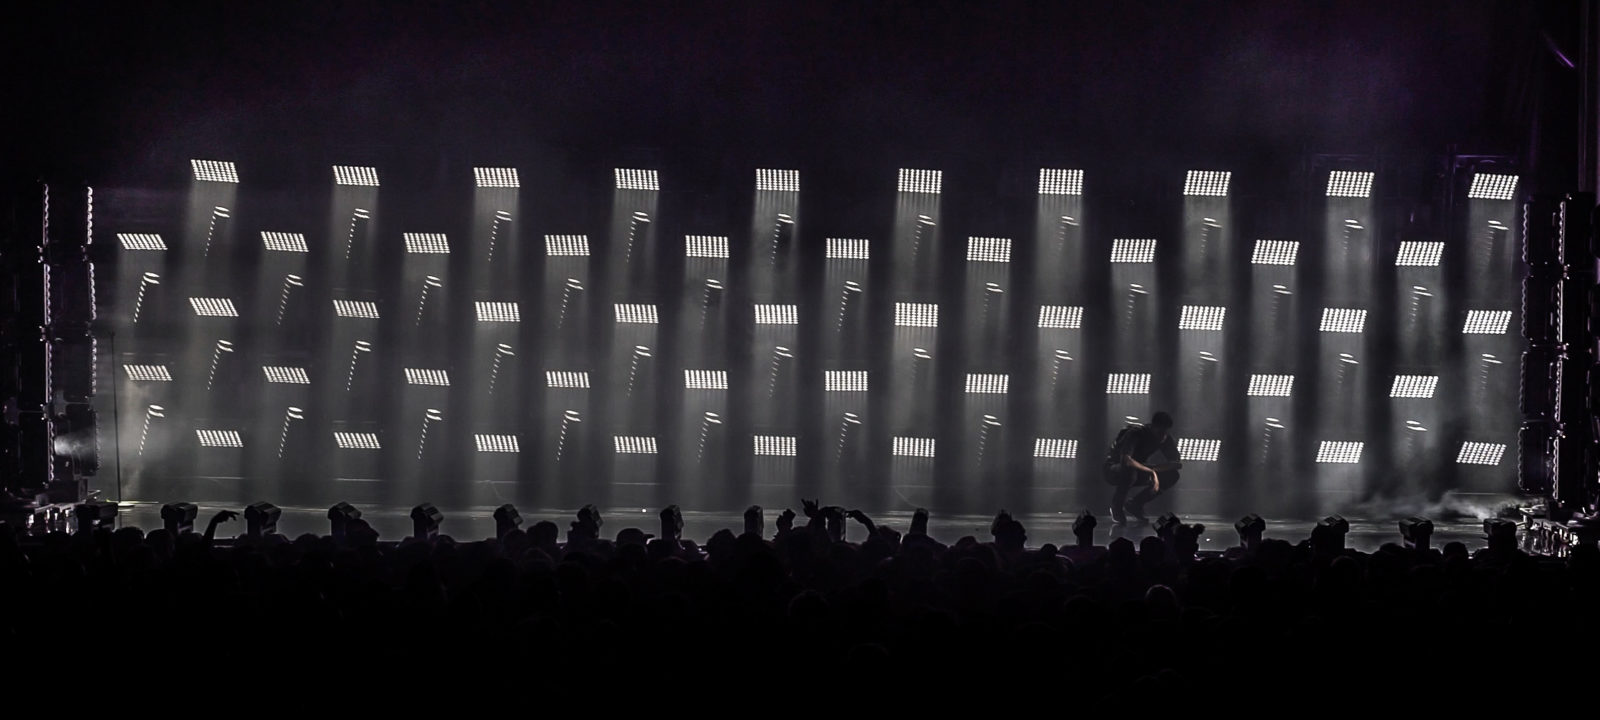 Ayrton lighting fixtures define looks for Vince Staples and